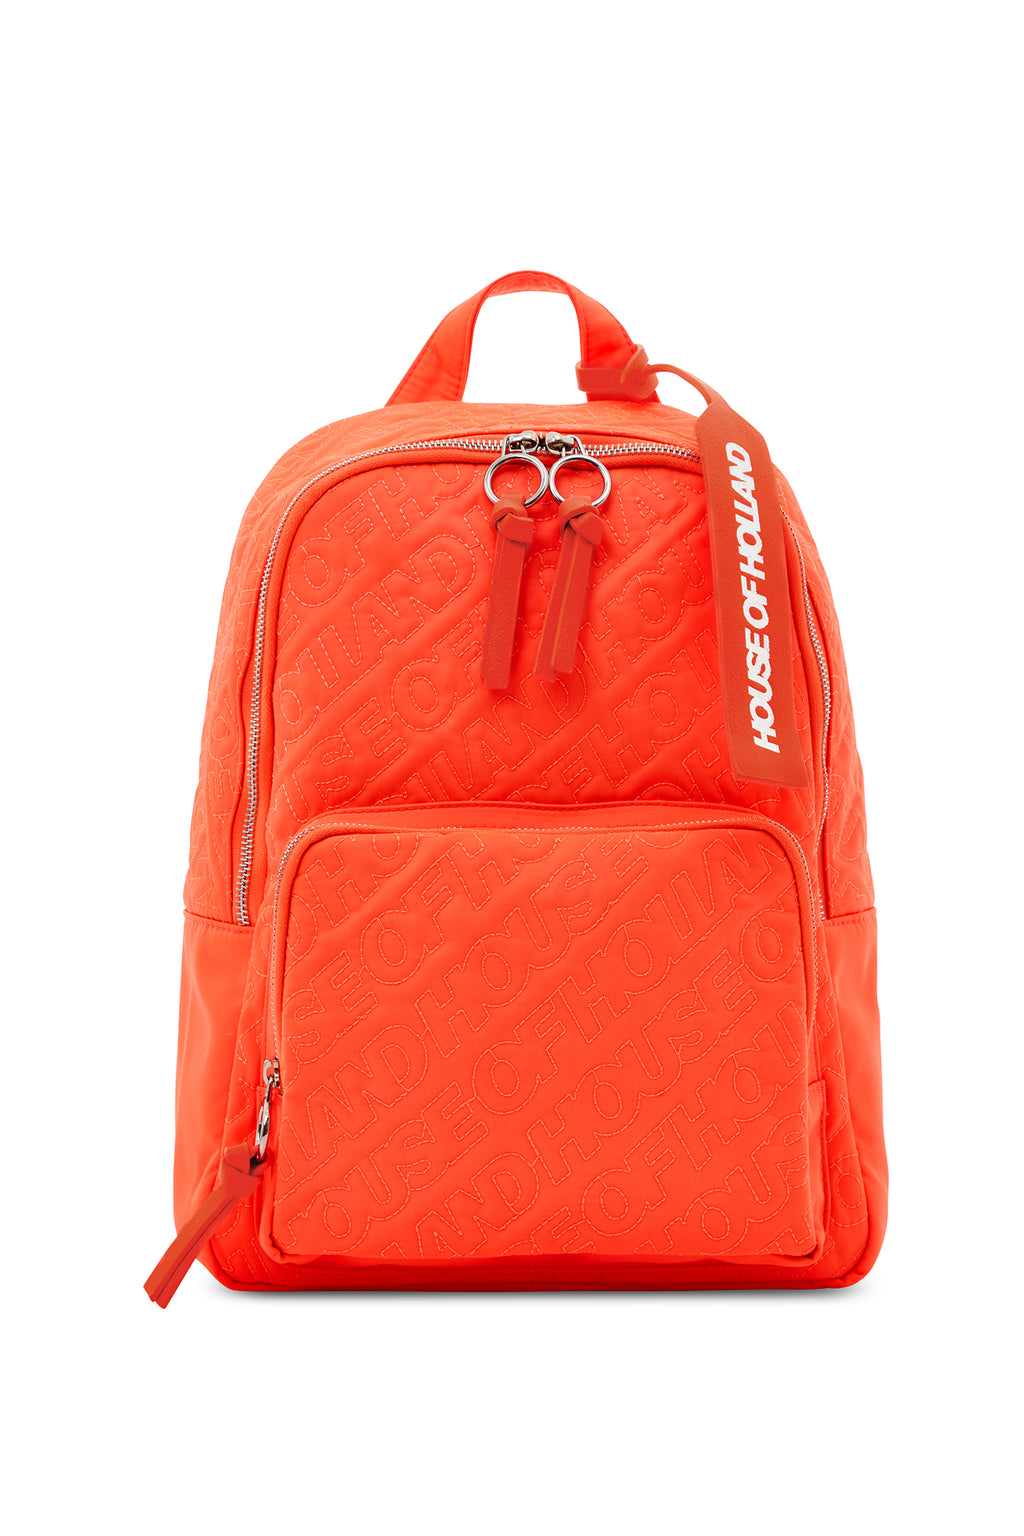 'HOH' Neon Orange Embroidered Backpack